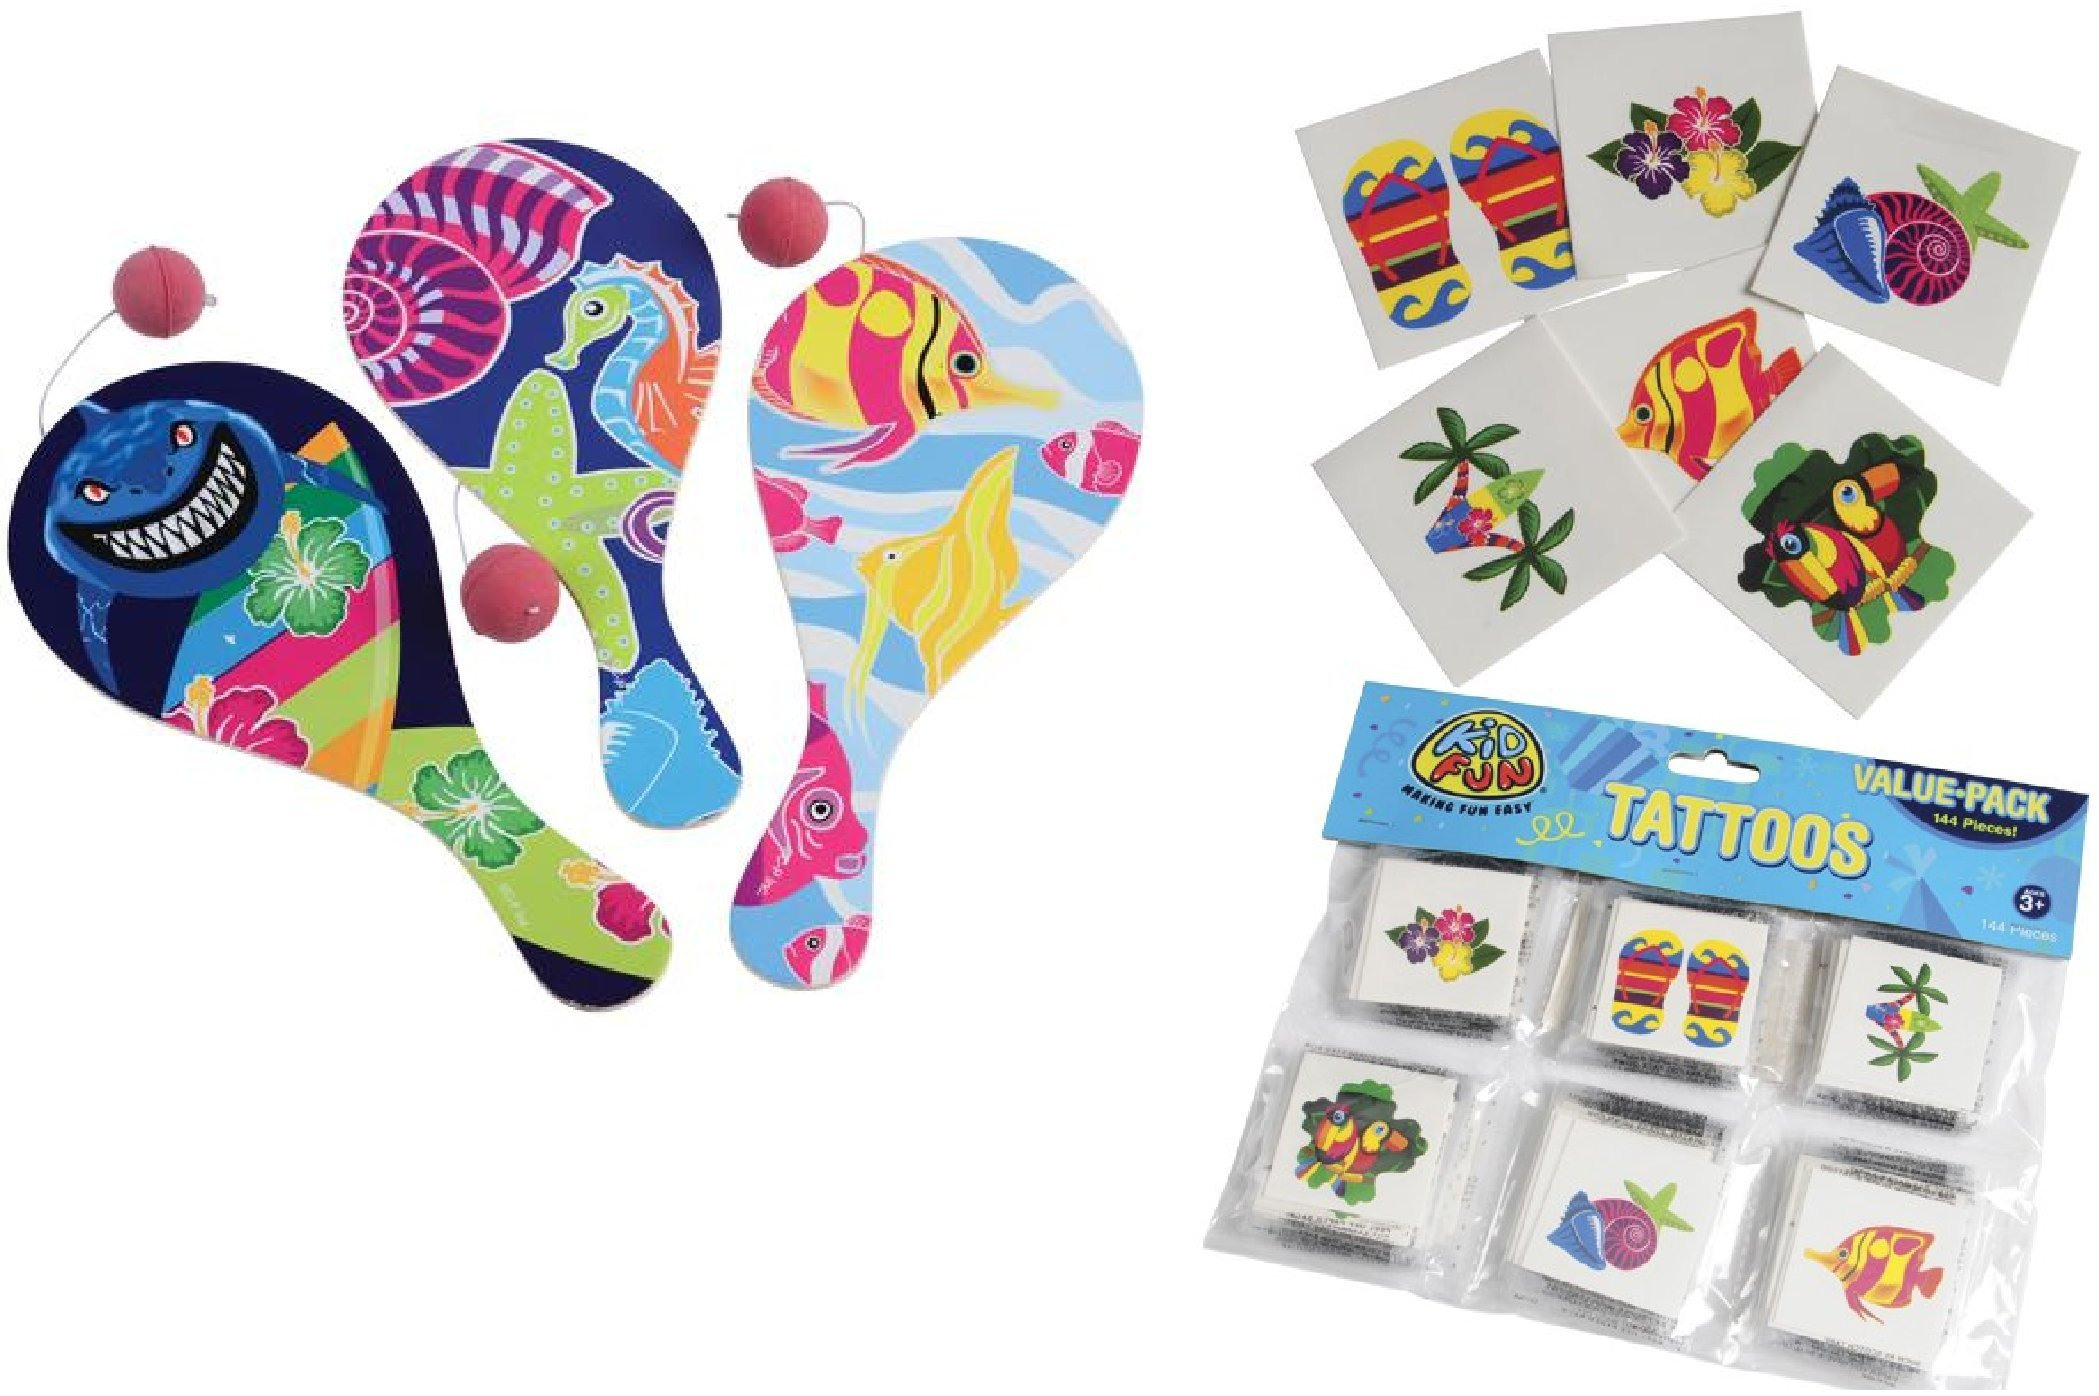 CVN Fun Luau/Hawaiian Theme Party Favors / 12 Luau Paddleball Games / 12 DZ Temporary Tattoos